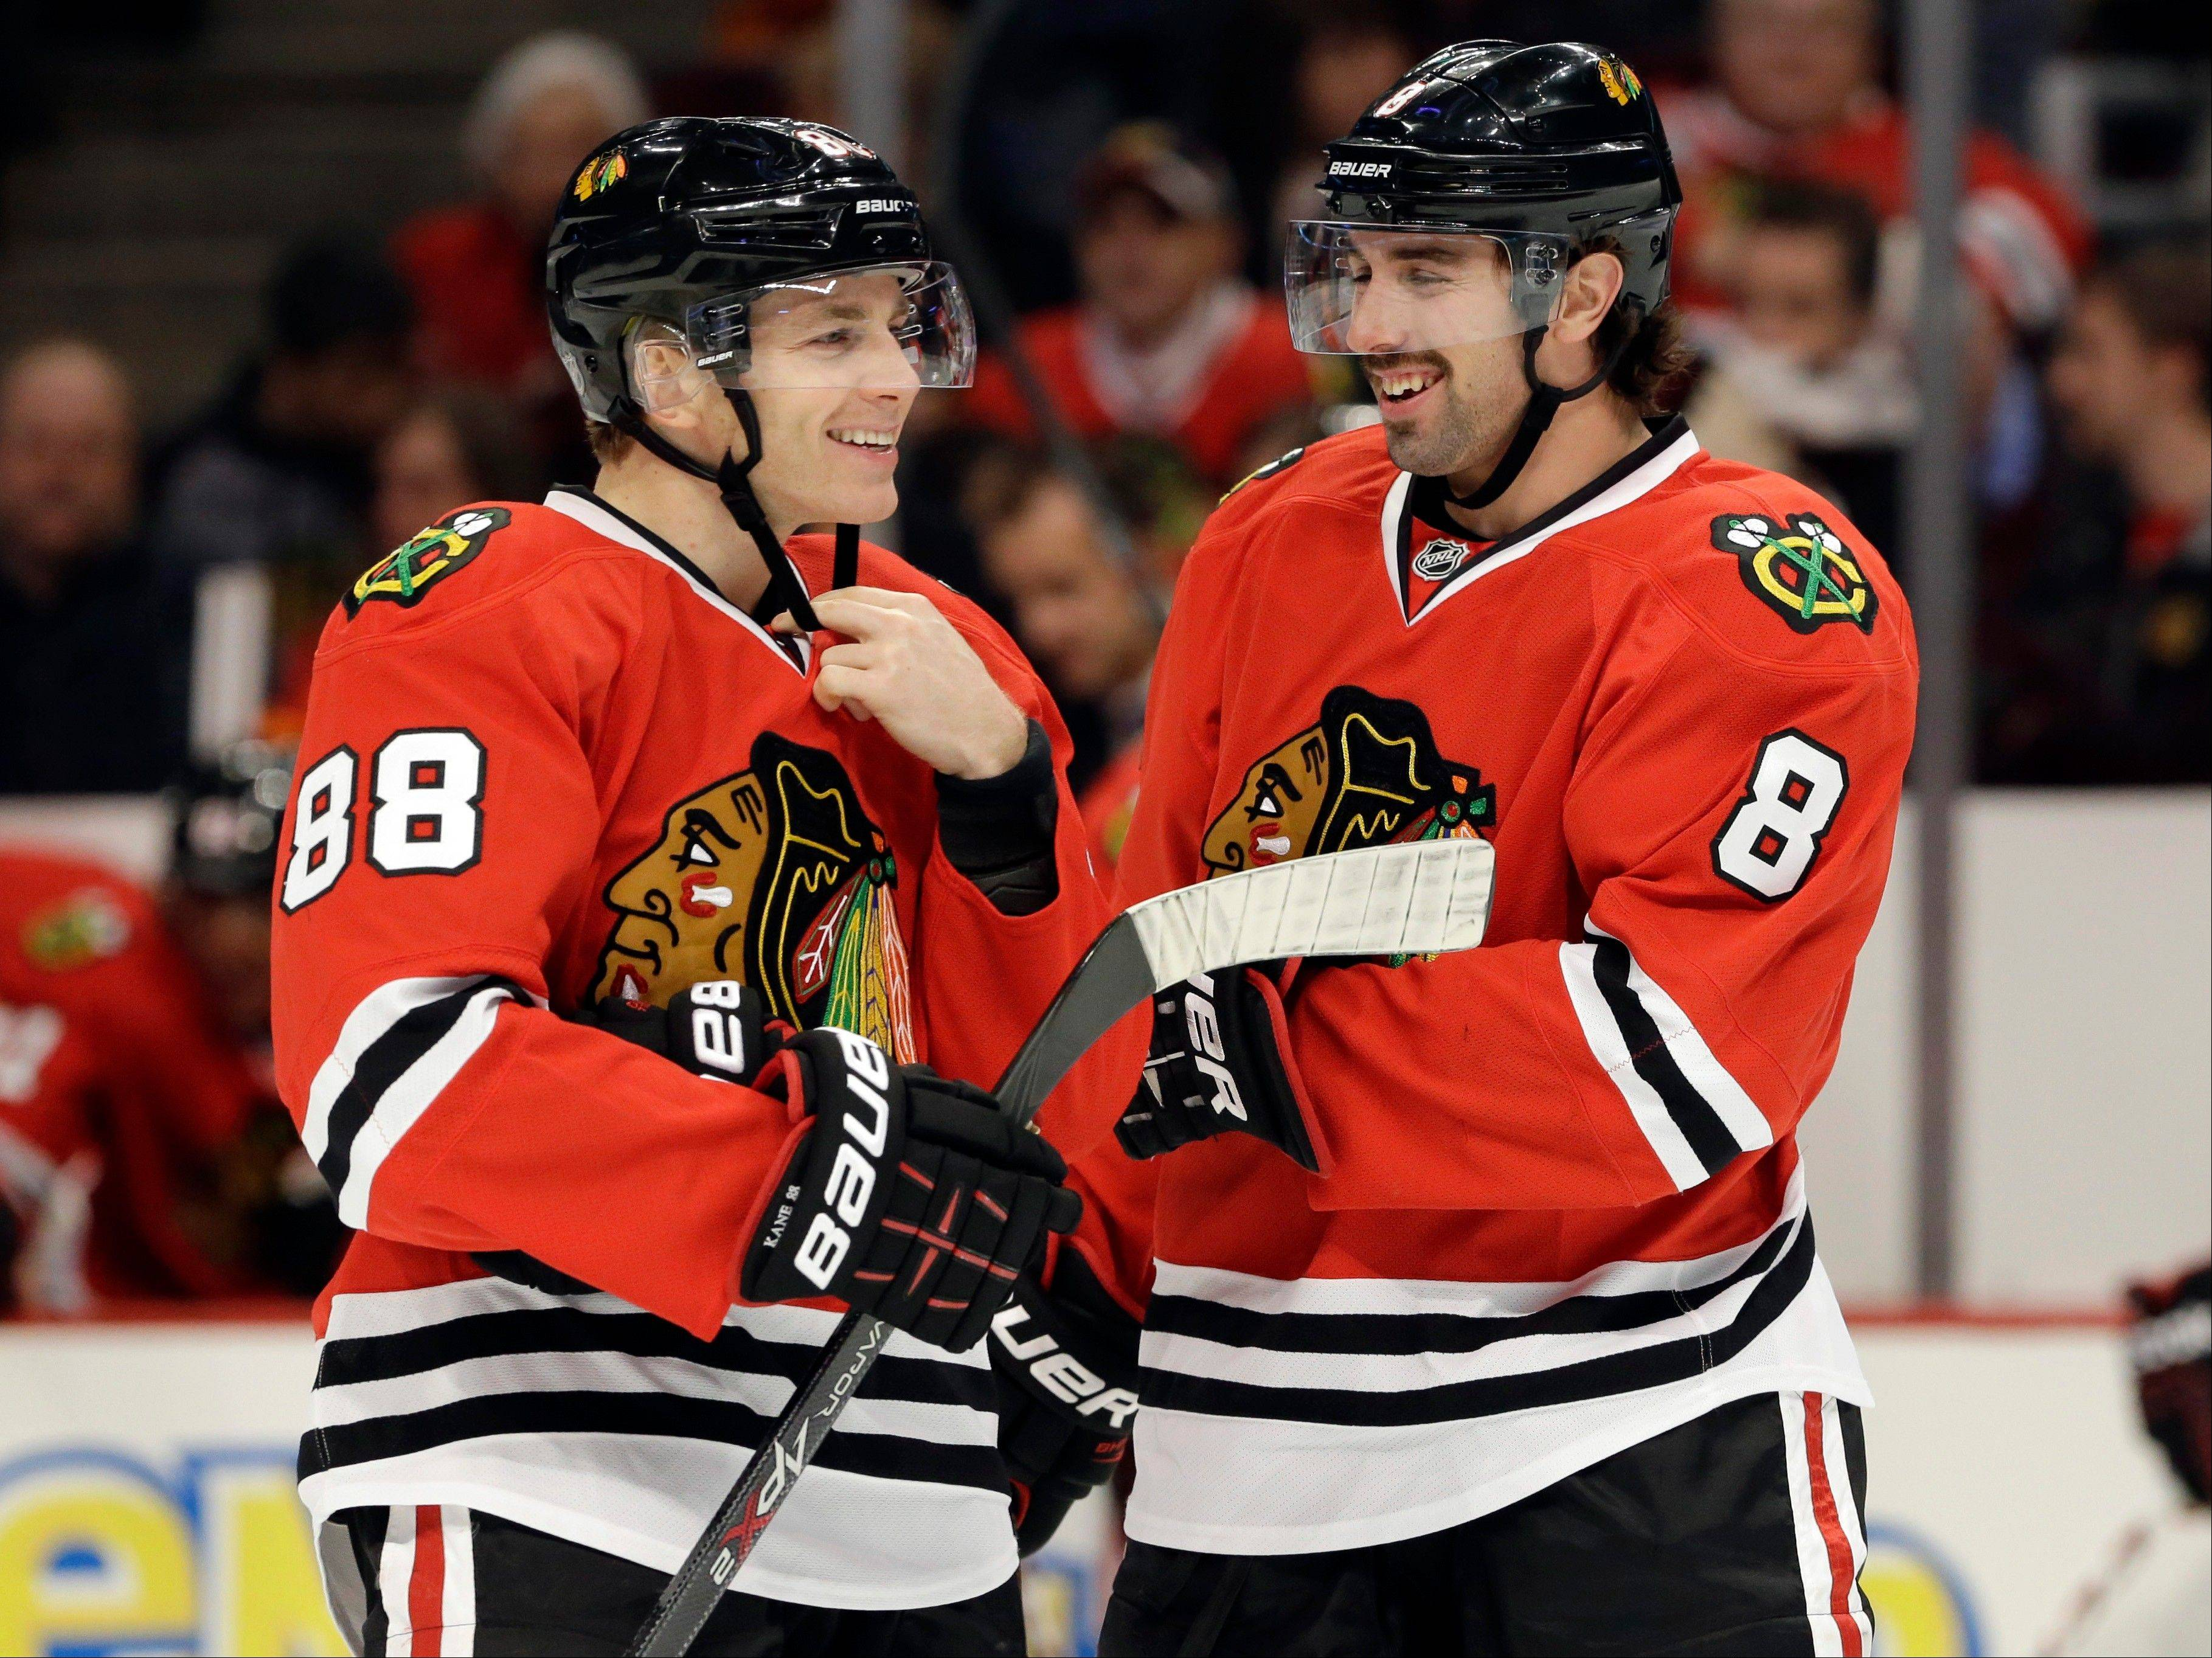 Patrick Kane, left, made the U.S. Olympic team, but Blackhawks teammate Nick Leddy did not.